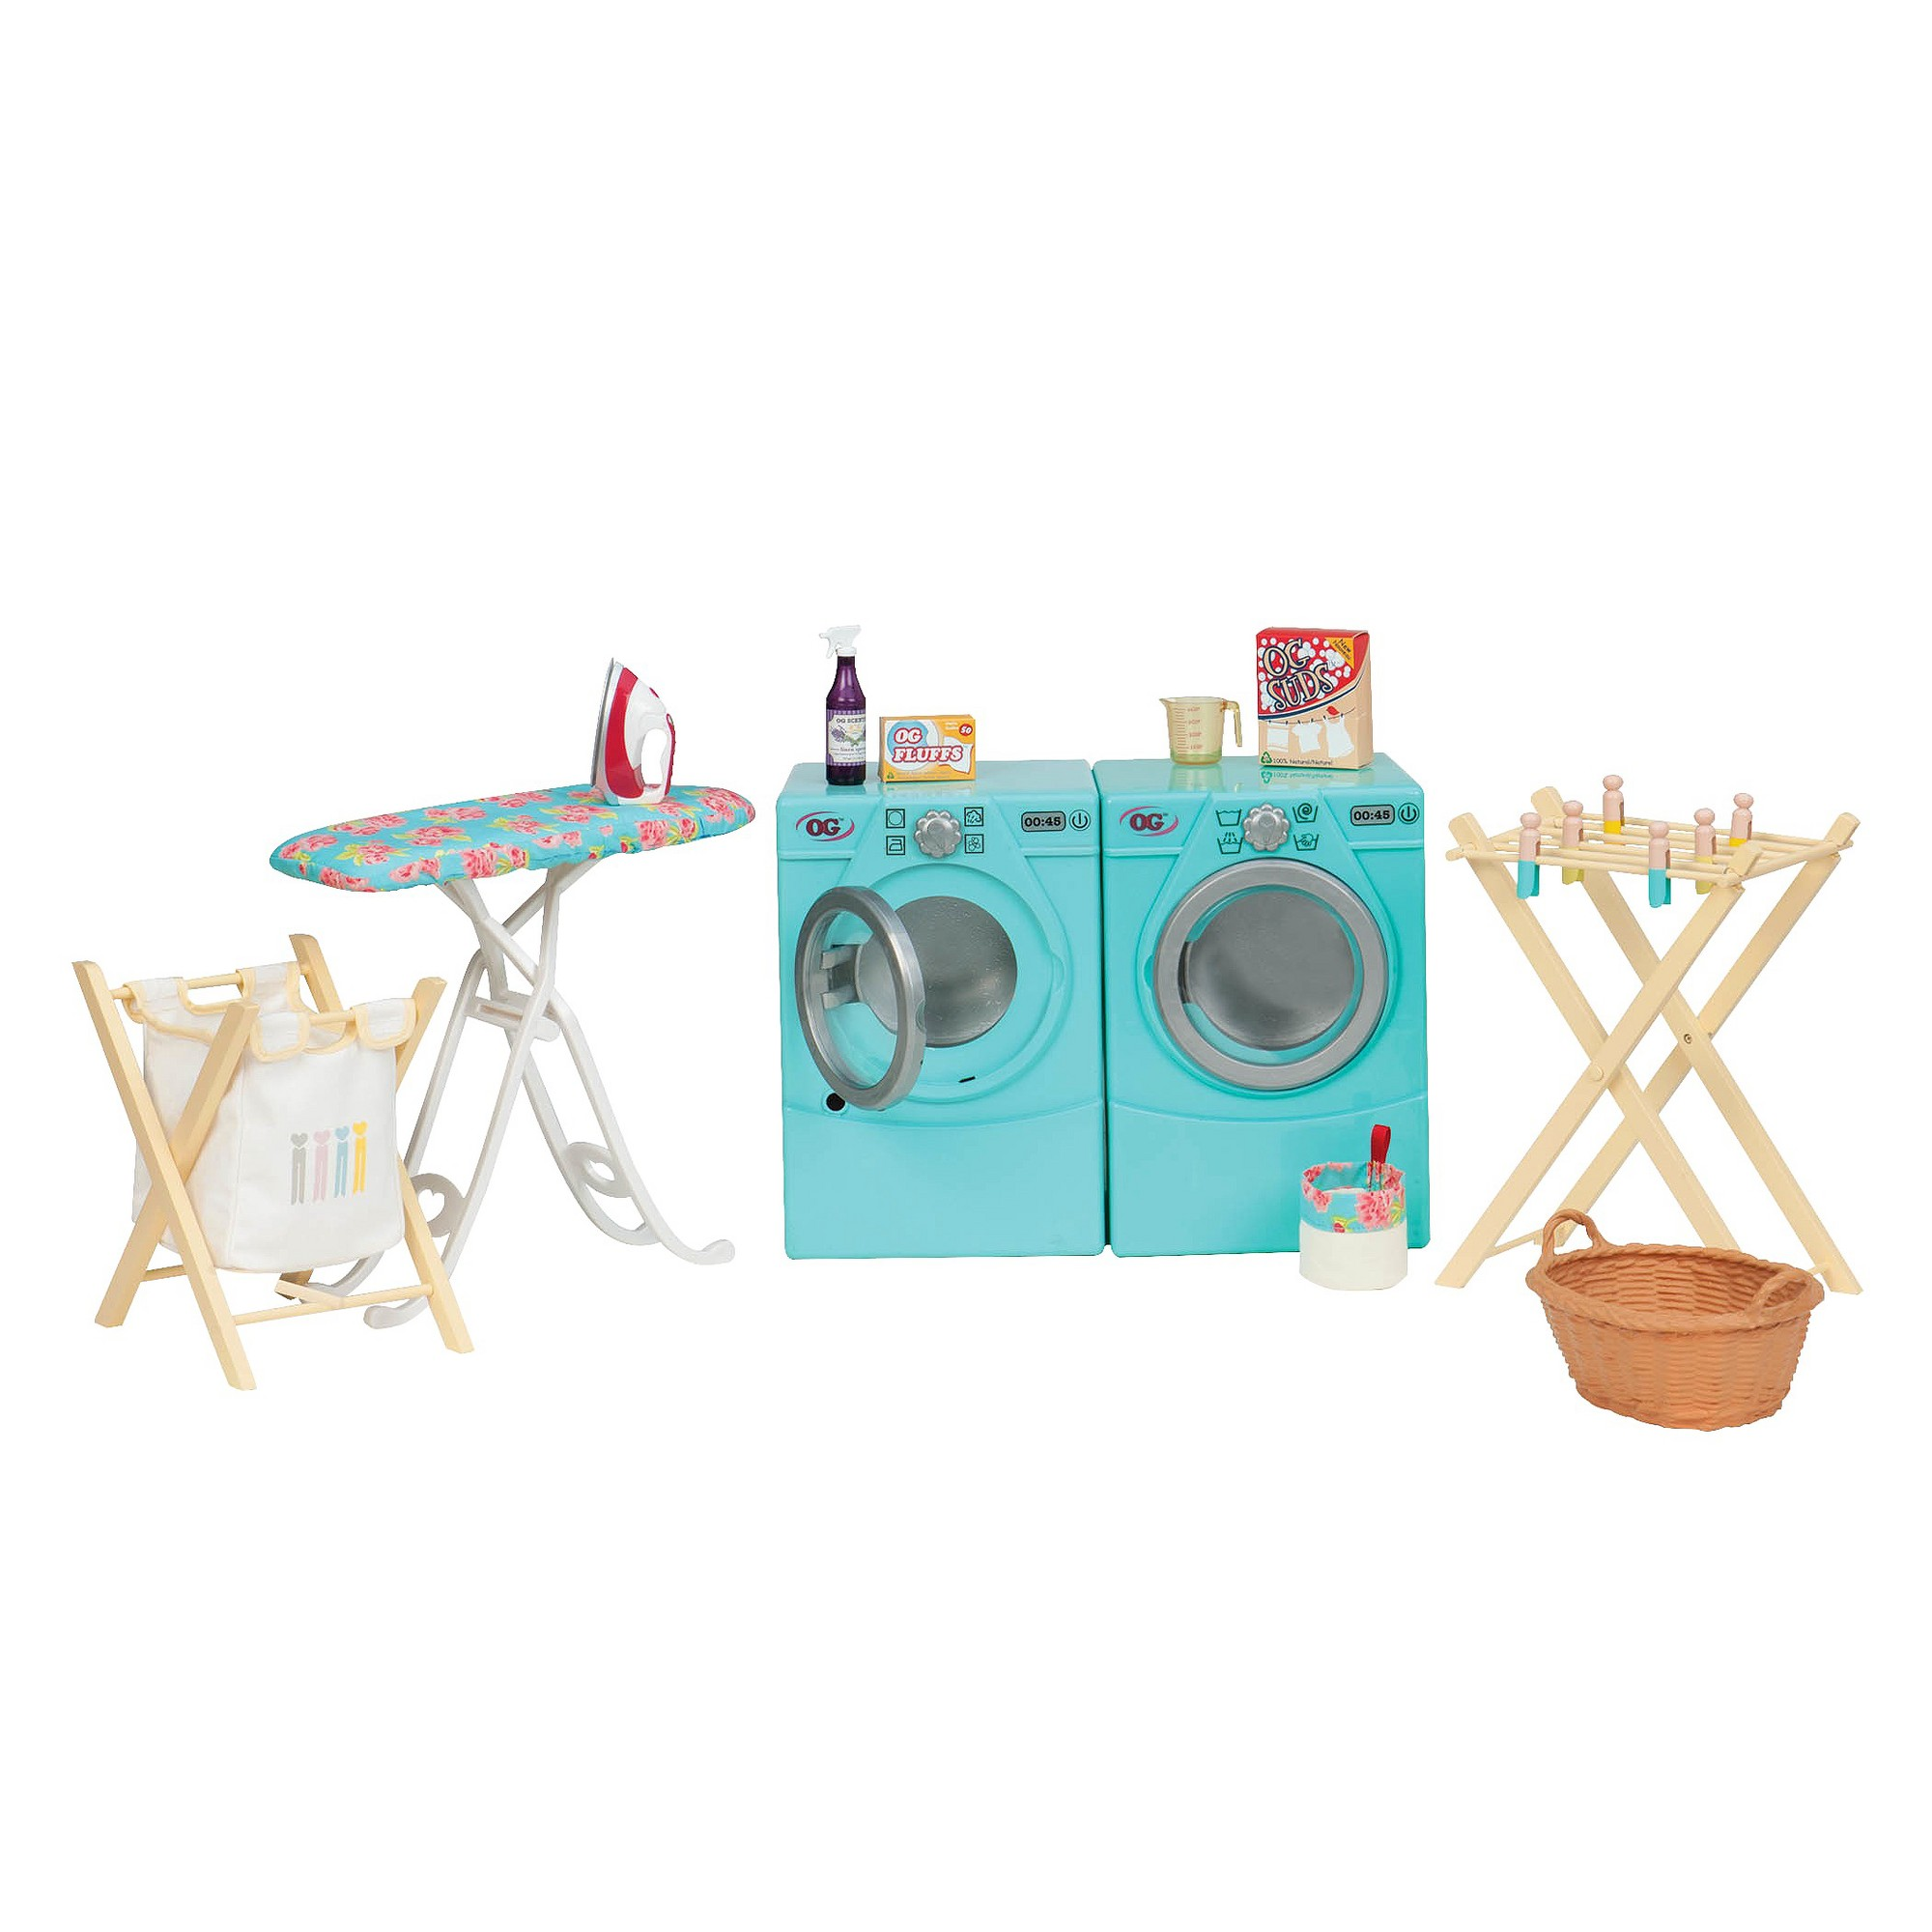 Our Generation 174 Tumble And Spin Laundry Accessory Set